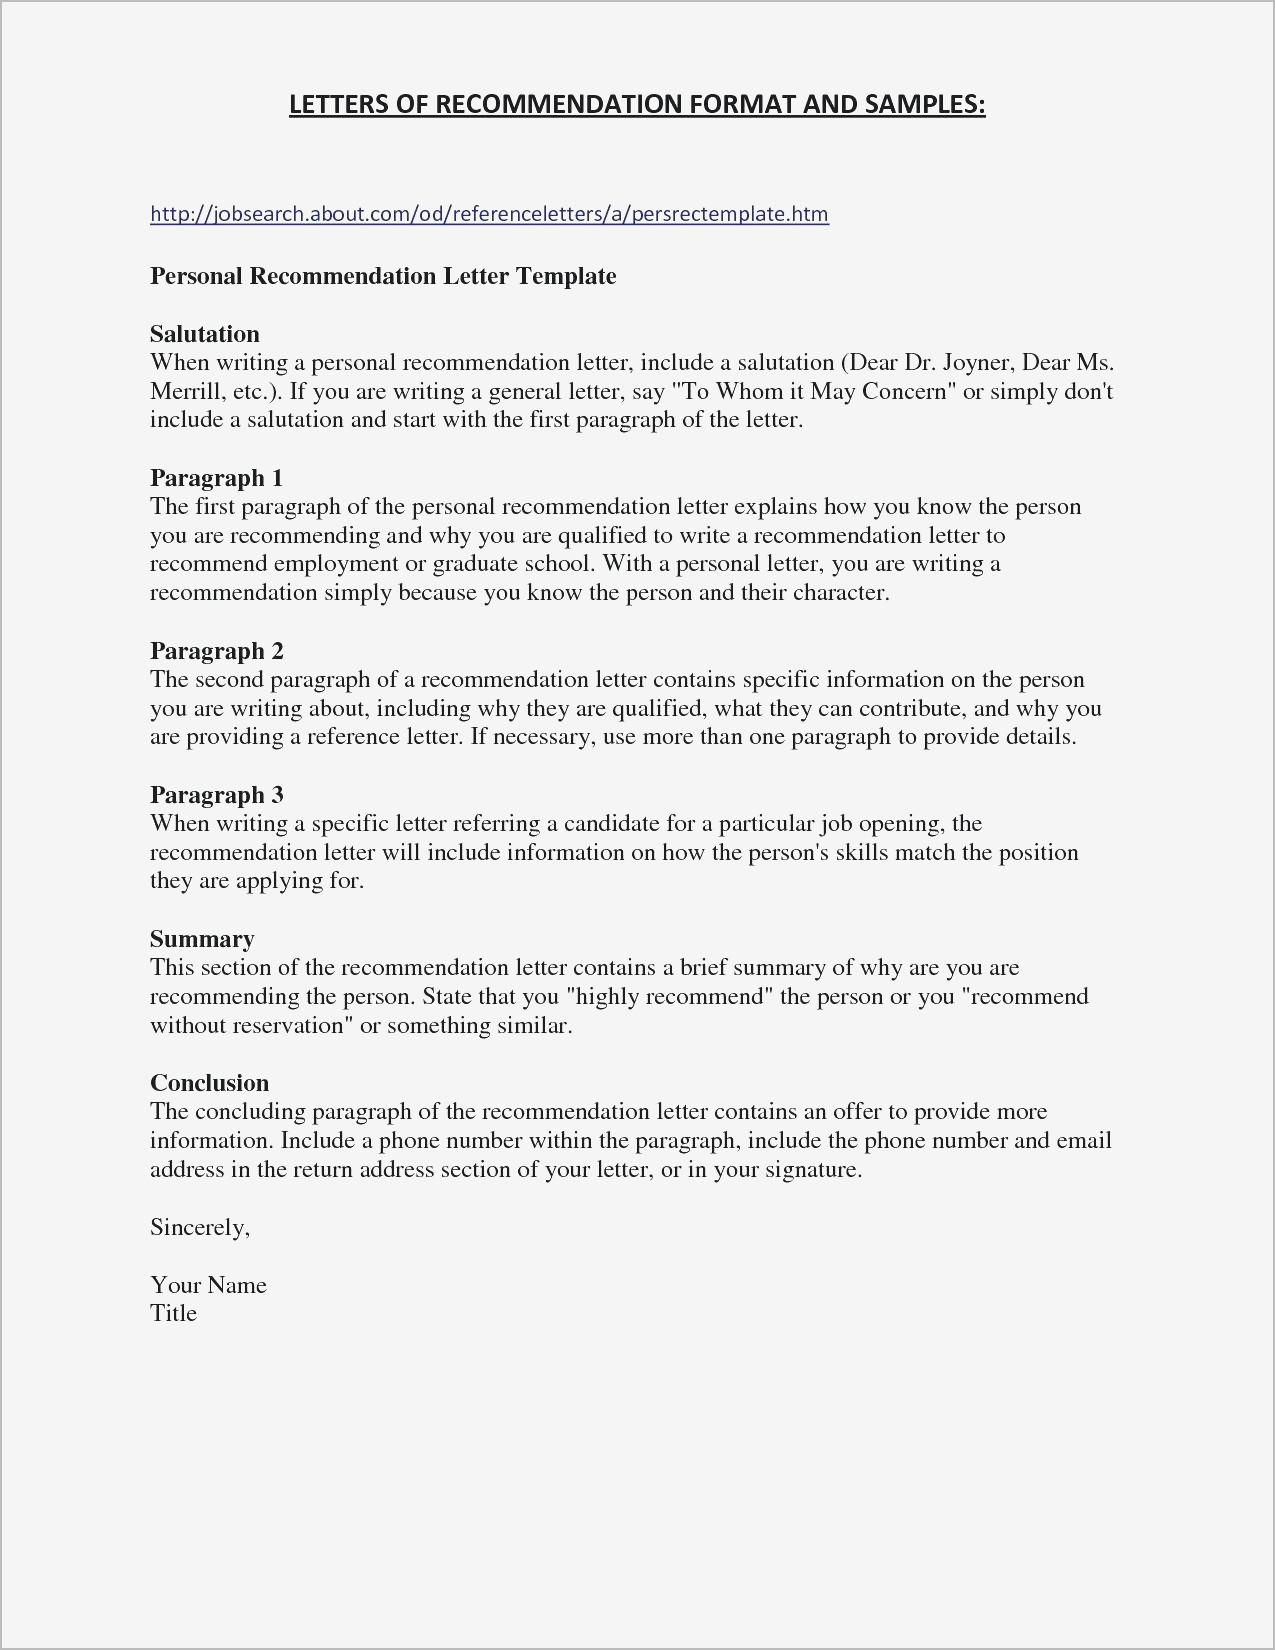 Personal Reference Letter Template Word - Personal Reference Letter Template Word Samples